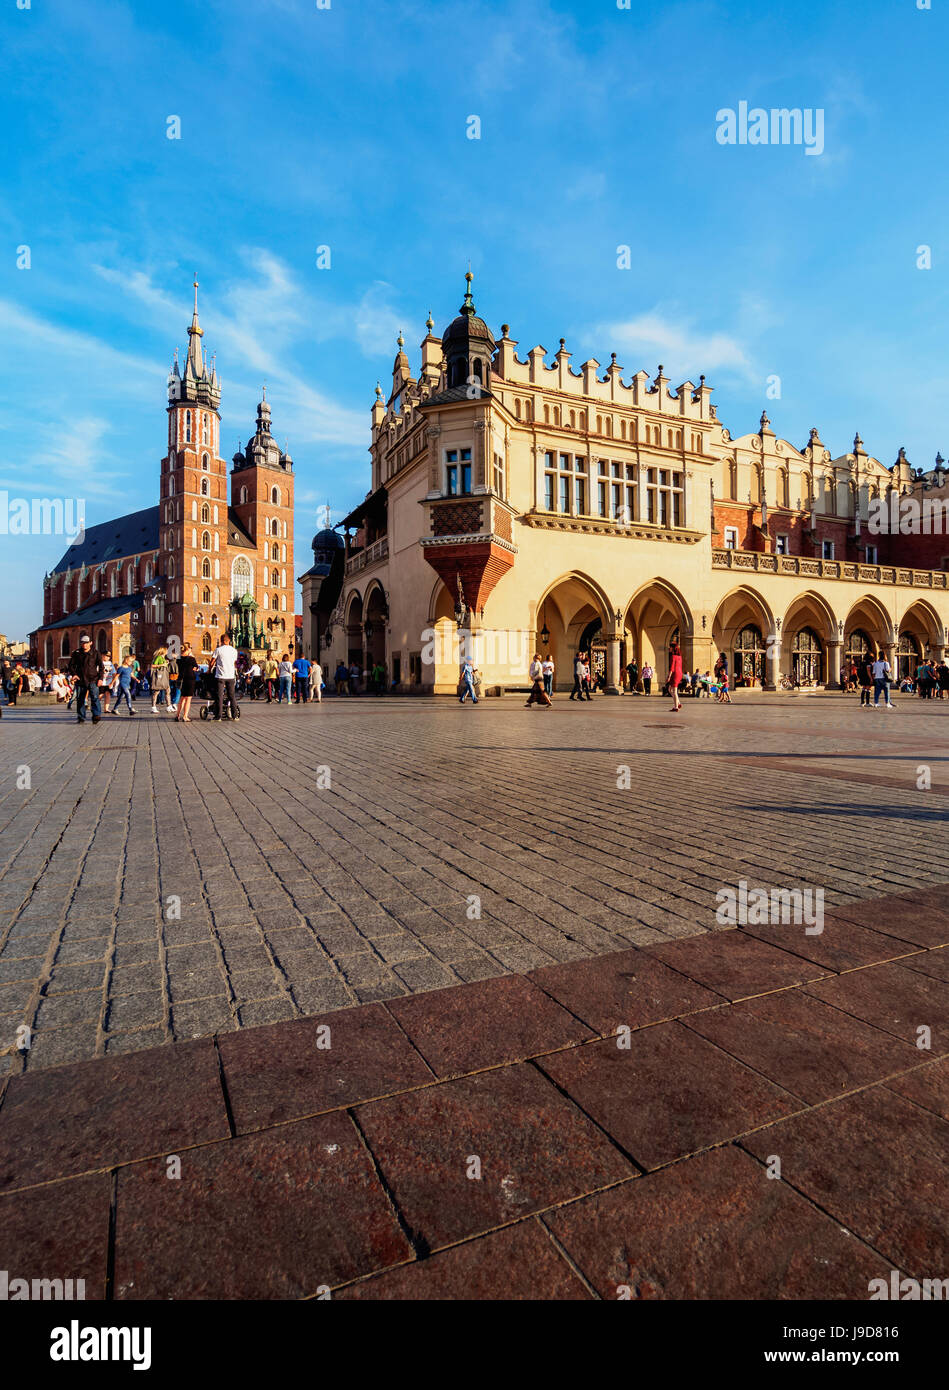 Main Market Square, St. Mary Basilica and Cloth Hall, Cracow, Lesser Poland Voivodeship, Poland, Europe - Stock Image